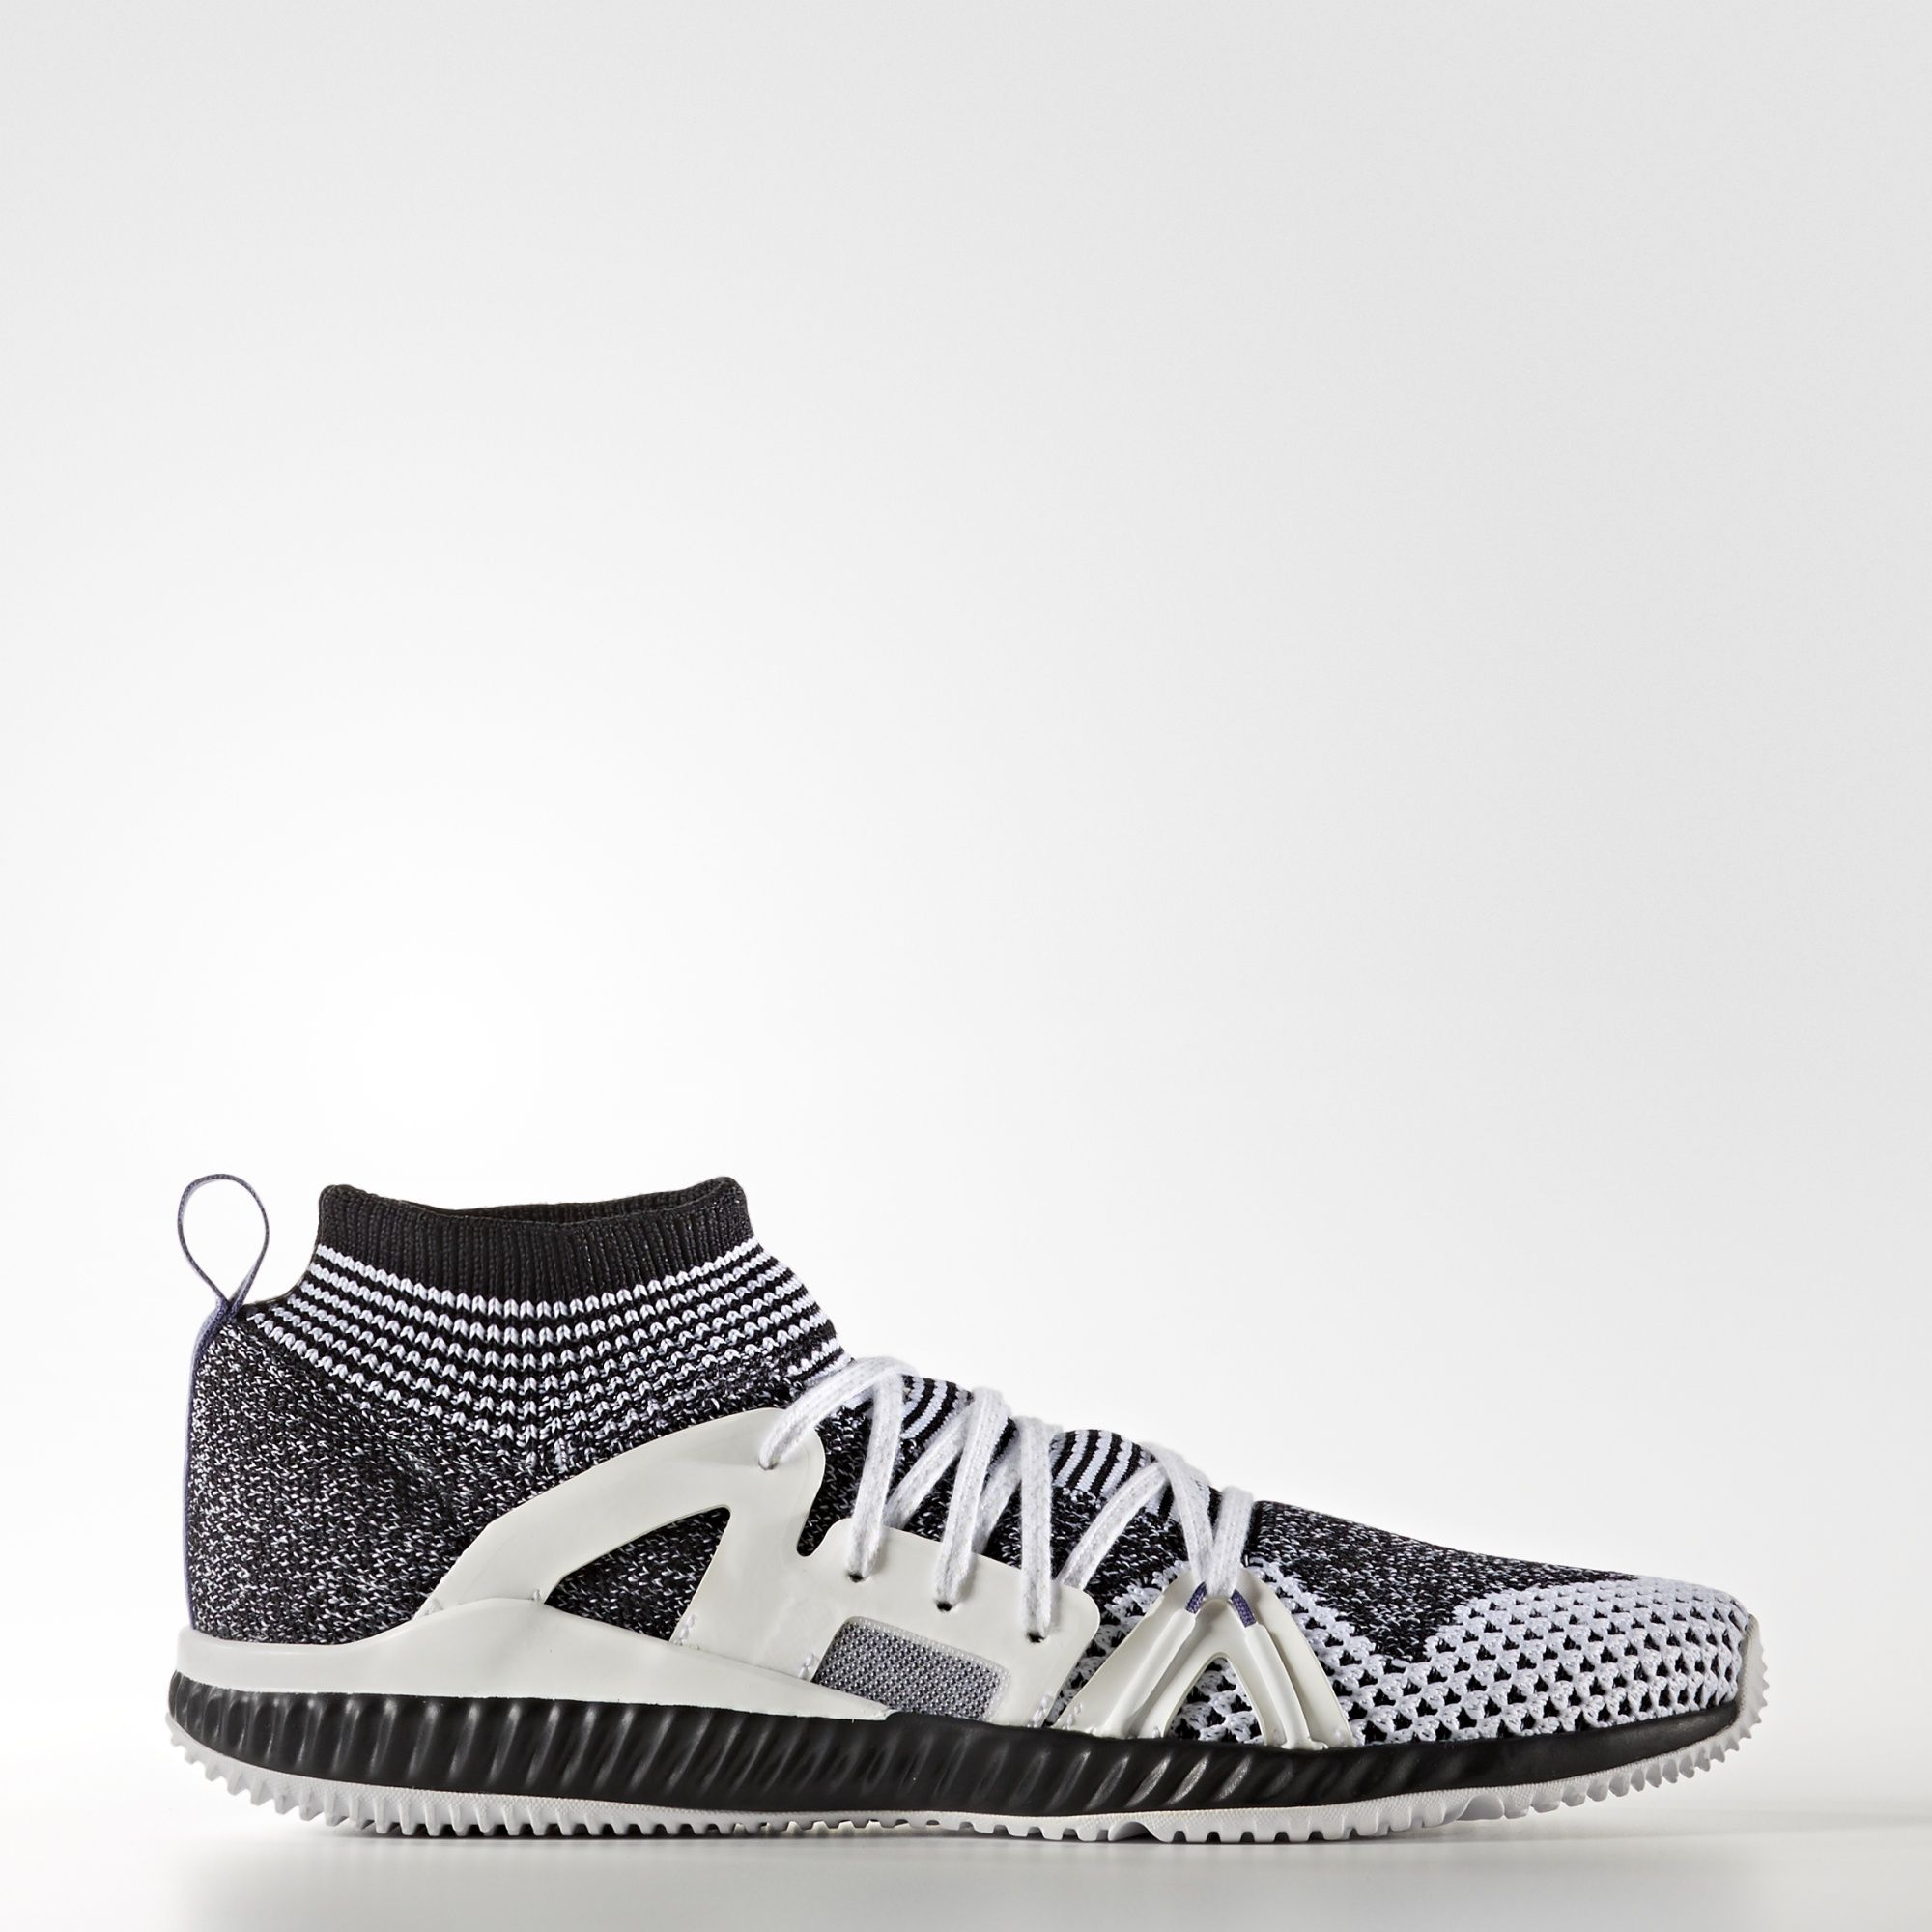 Power through your workouts in the adidas by Stella McCartney CrazyTrain Shoes. BOUNCE™ offers stability and speed, and the primeknit upper provides added support.